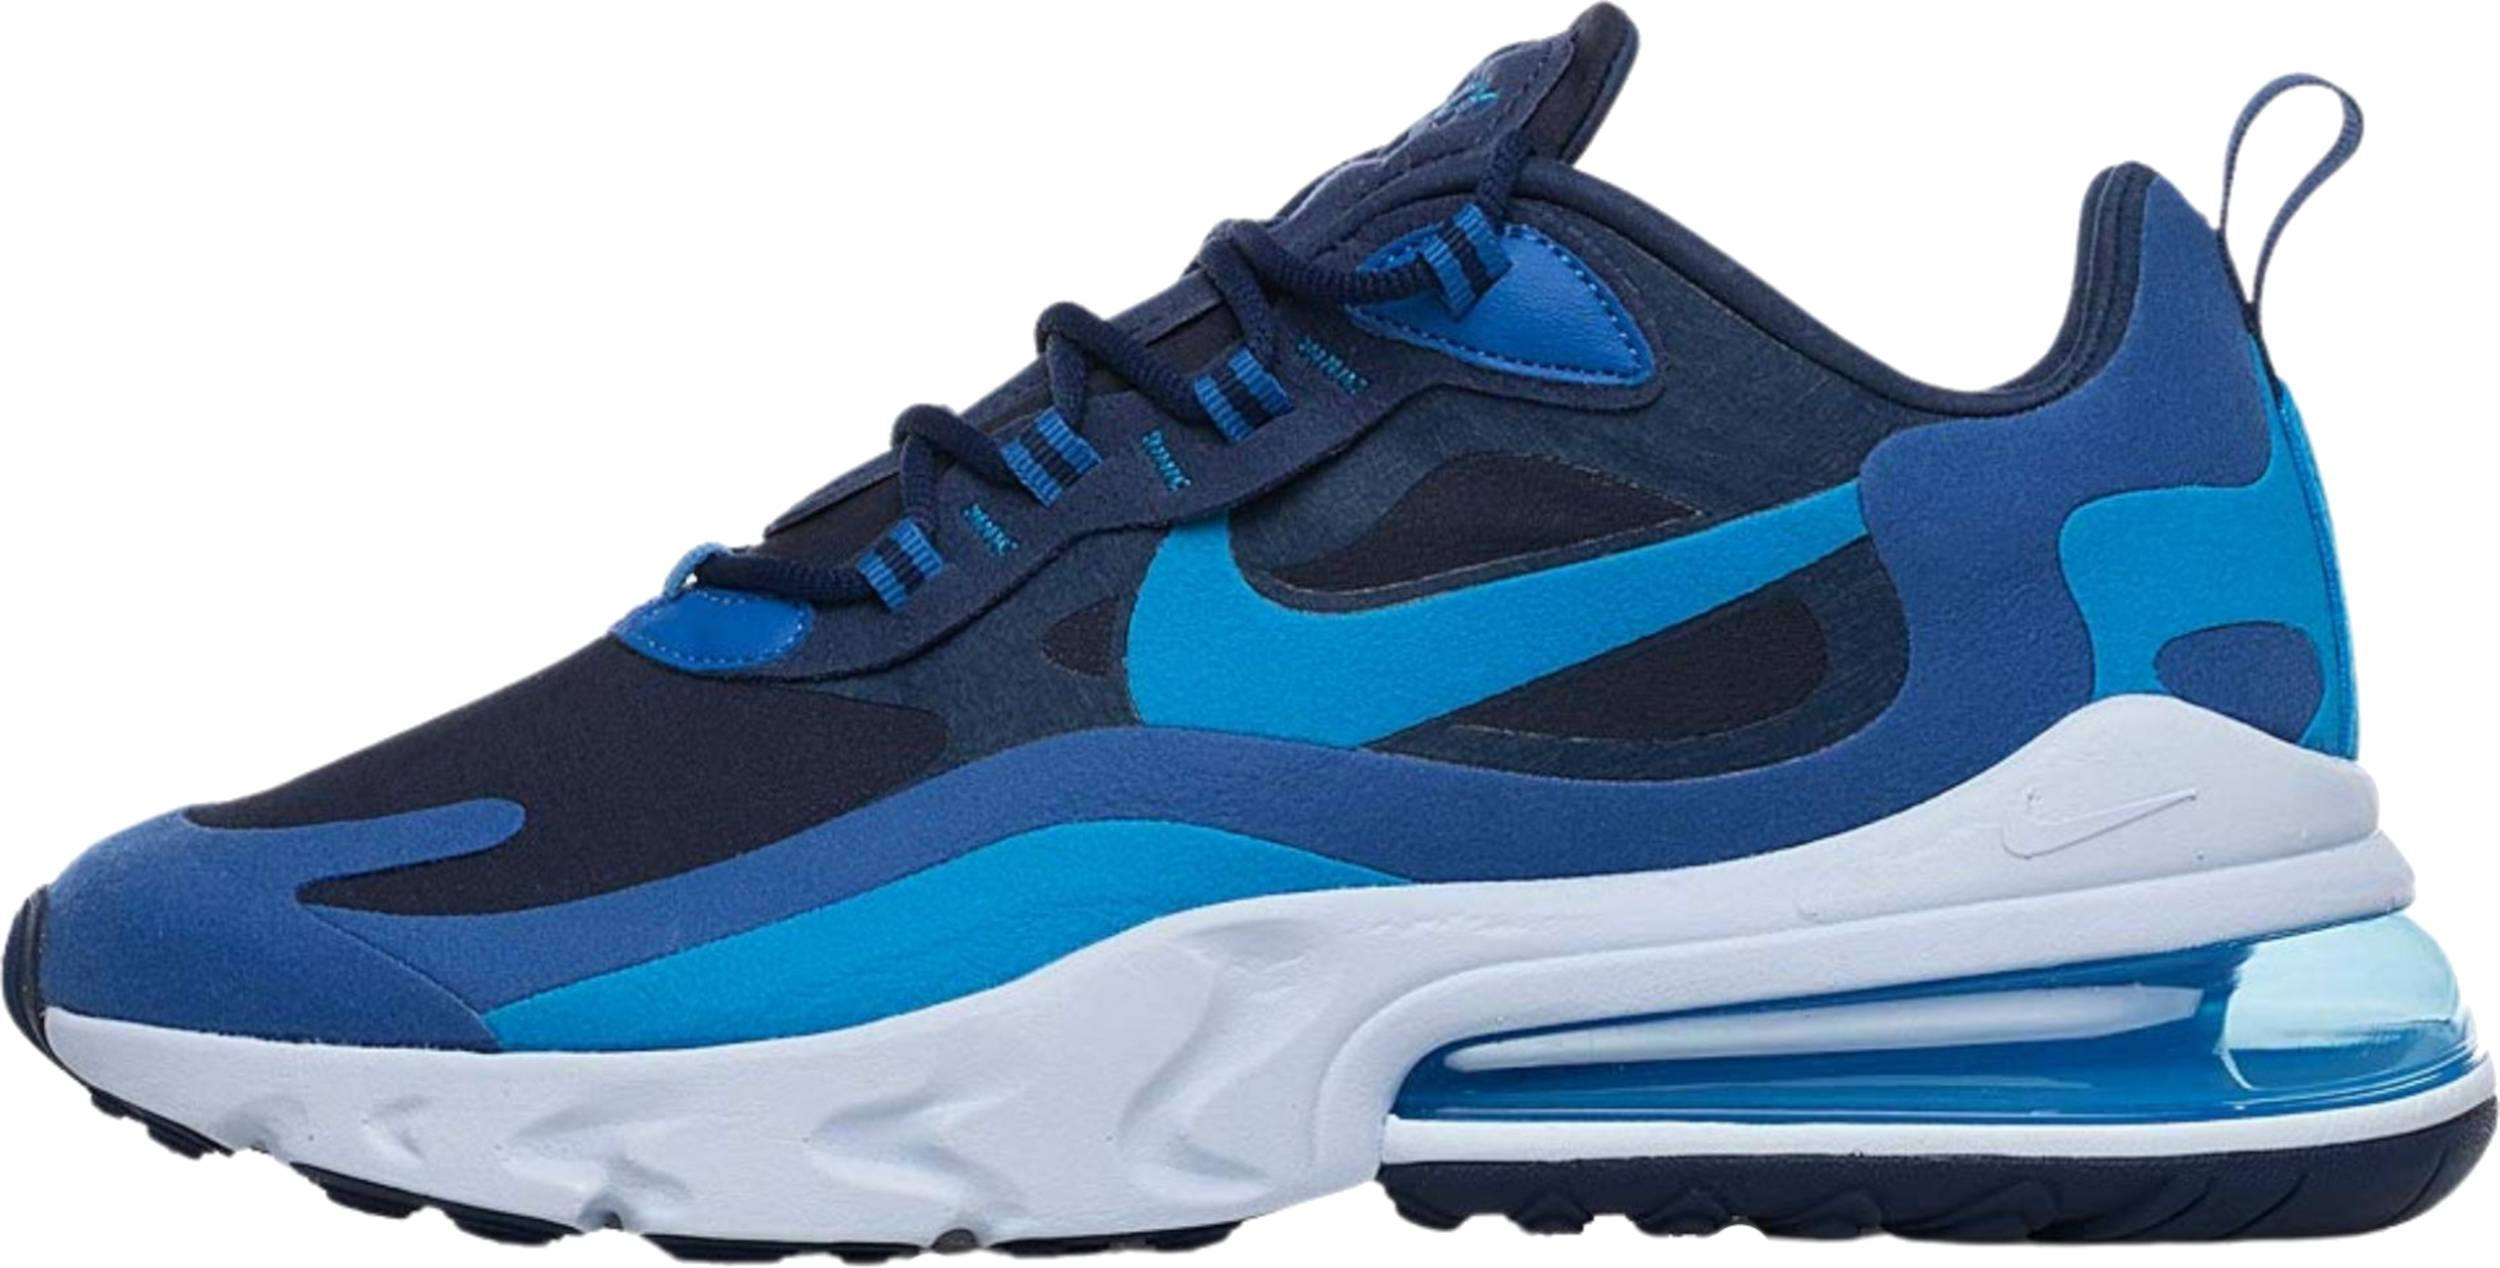 Vivace Documento cemento  Save 48% on Blue Nike Sneakers (134 Models in Stock)   RunRepeat